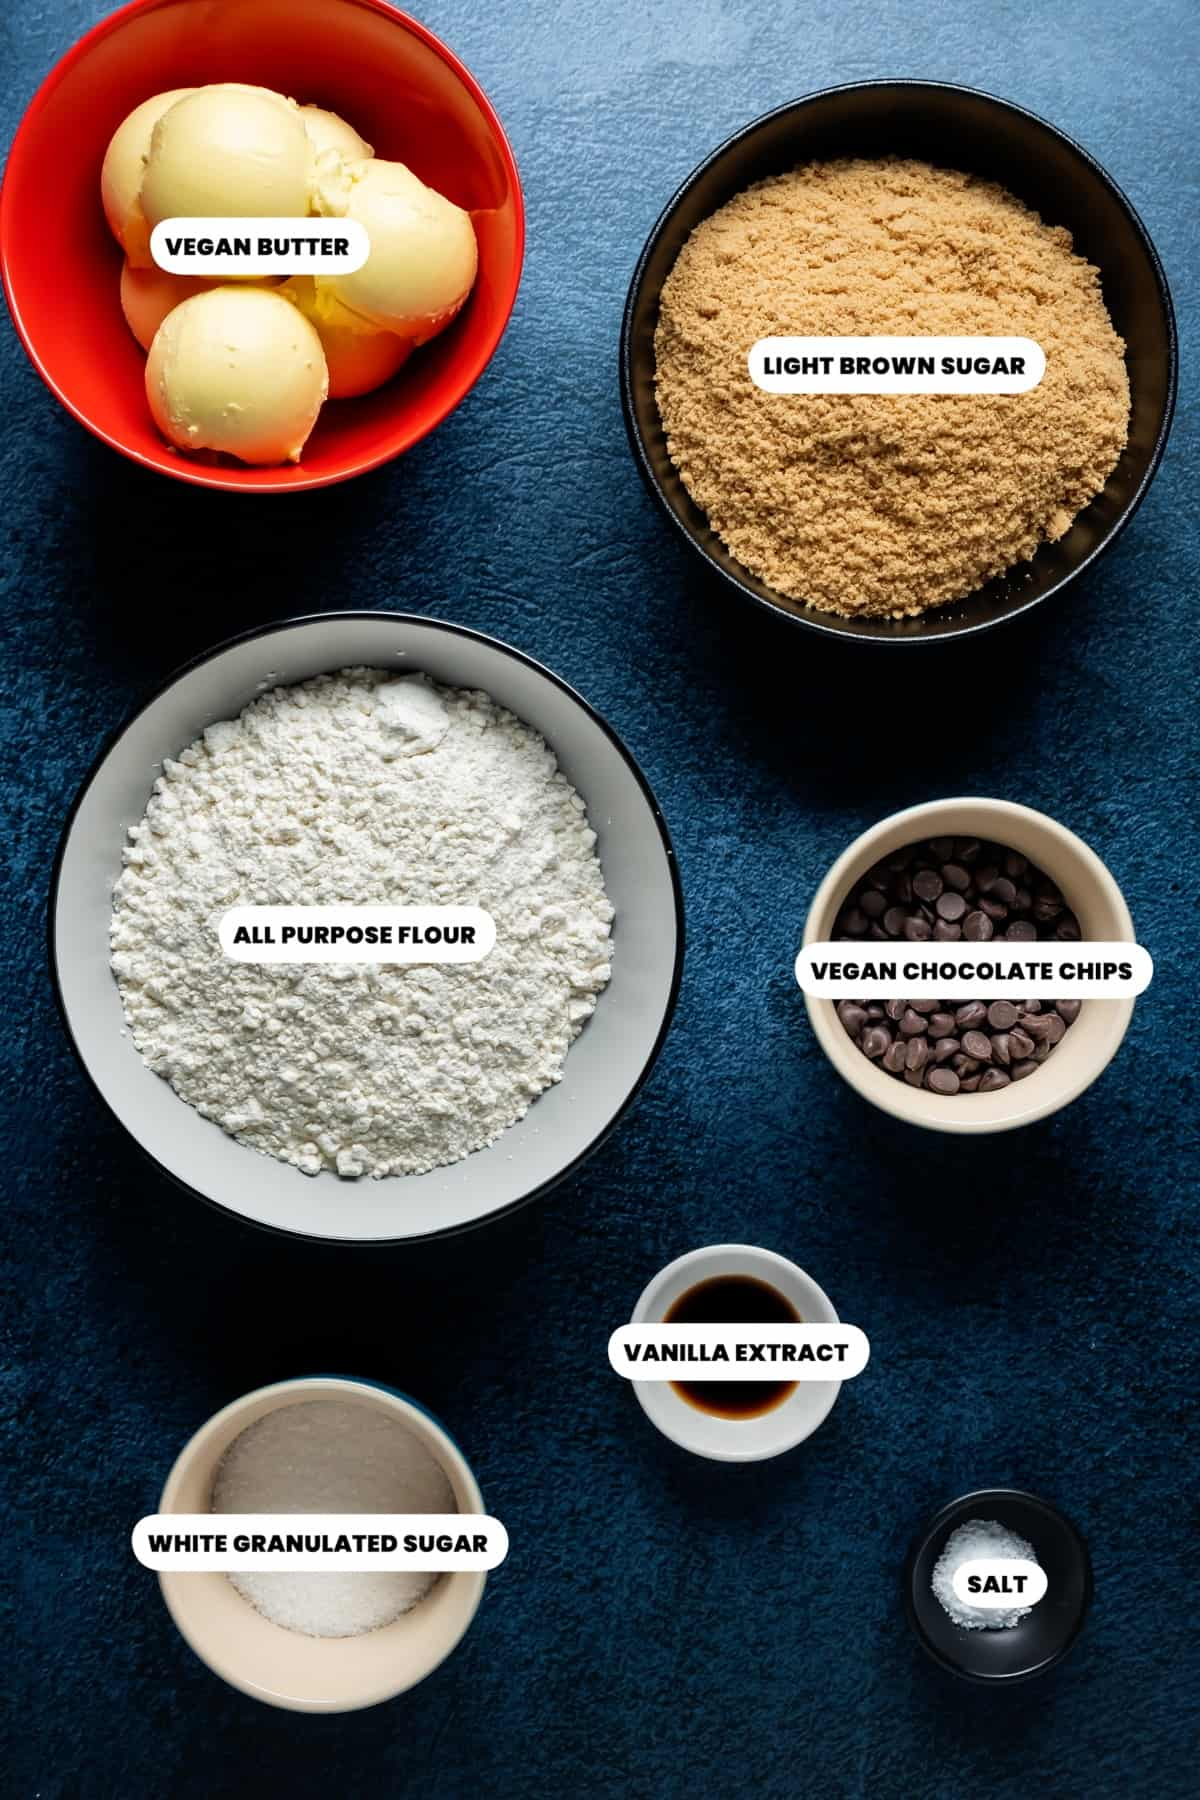 Photo of the ingredients needed to make vegan cookie dough.